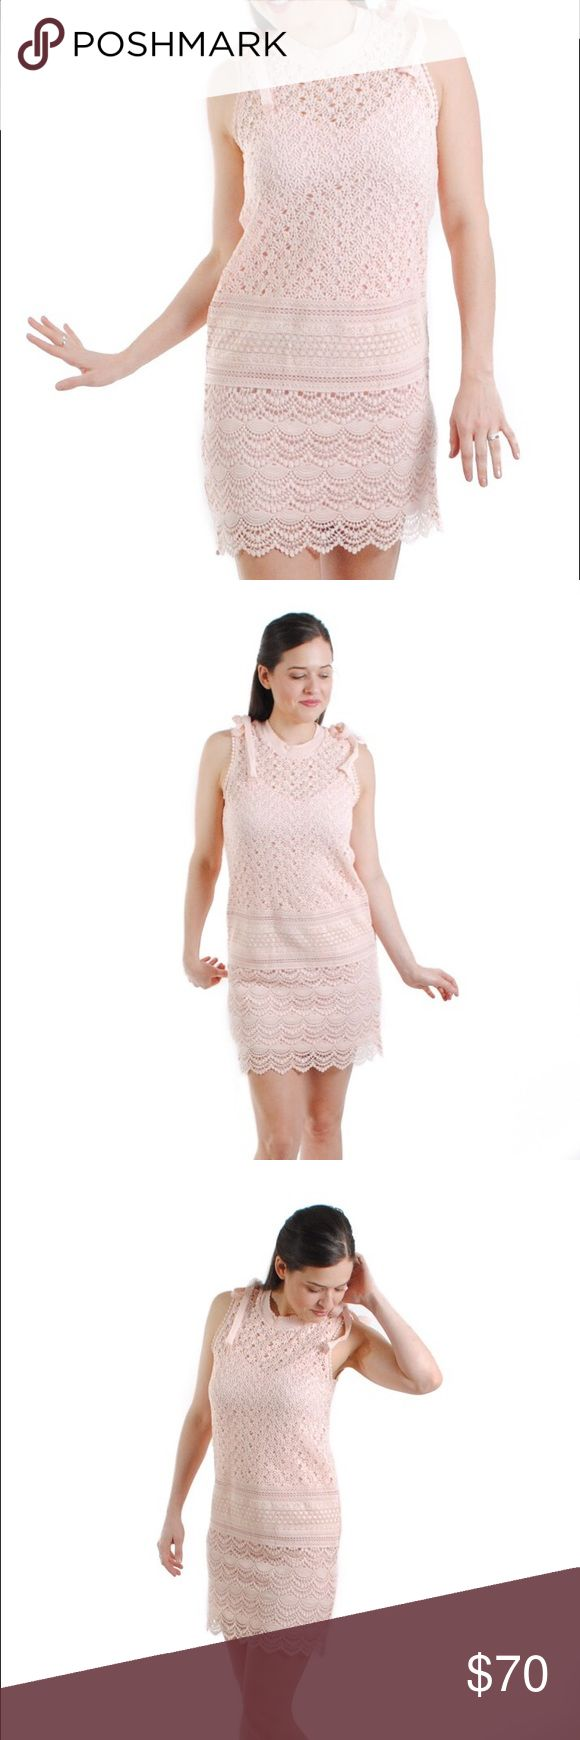 Angela Dress First stop: brunch! Stand out from the brunch crowd with this blush crochet stunner. Gear up for any spring special occasion with the tres chic Angela Dress!  100% cotton crochet and lining made from 100% polyester.  Blush crochet dress with separate lining.  size + fit: Model is 5ft 6in and is wearing a size small. Fit is true to size and comfortable to sit in. Dresses